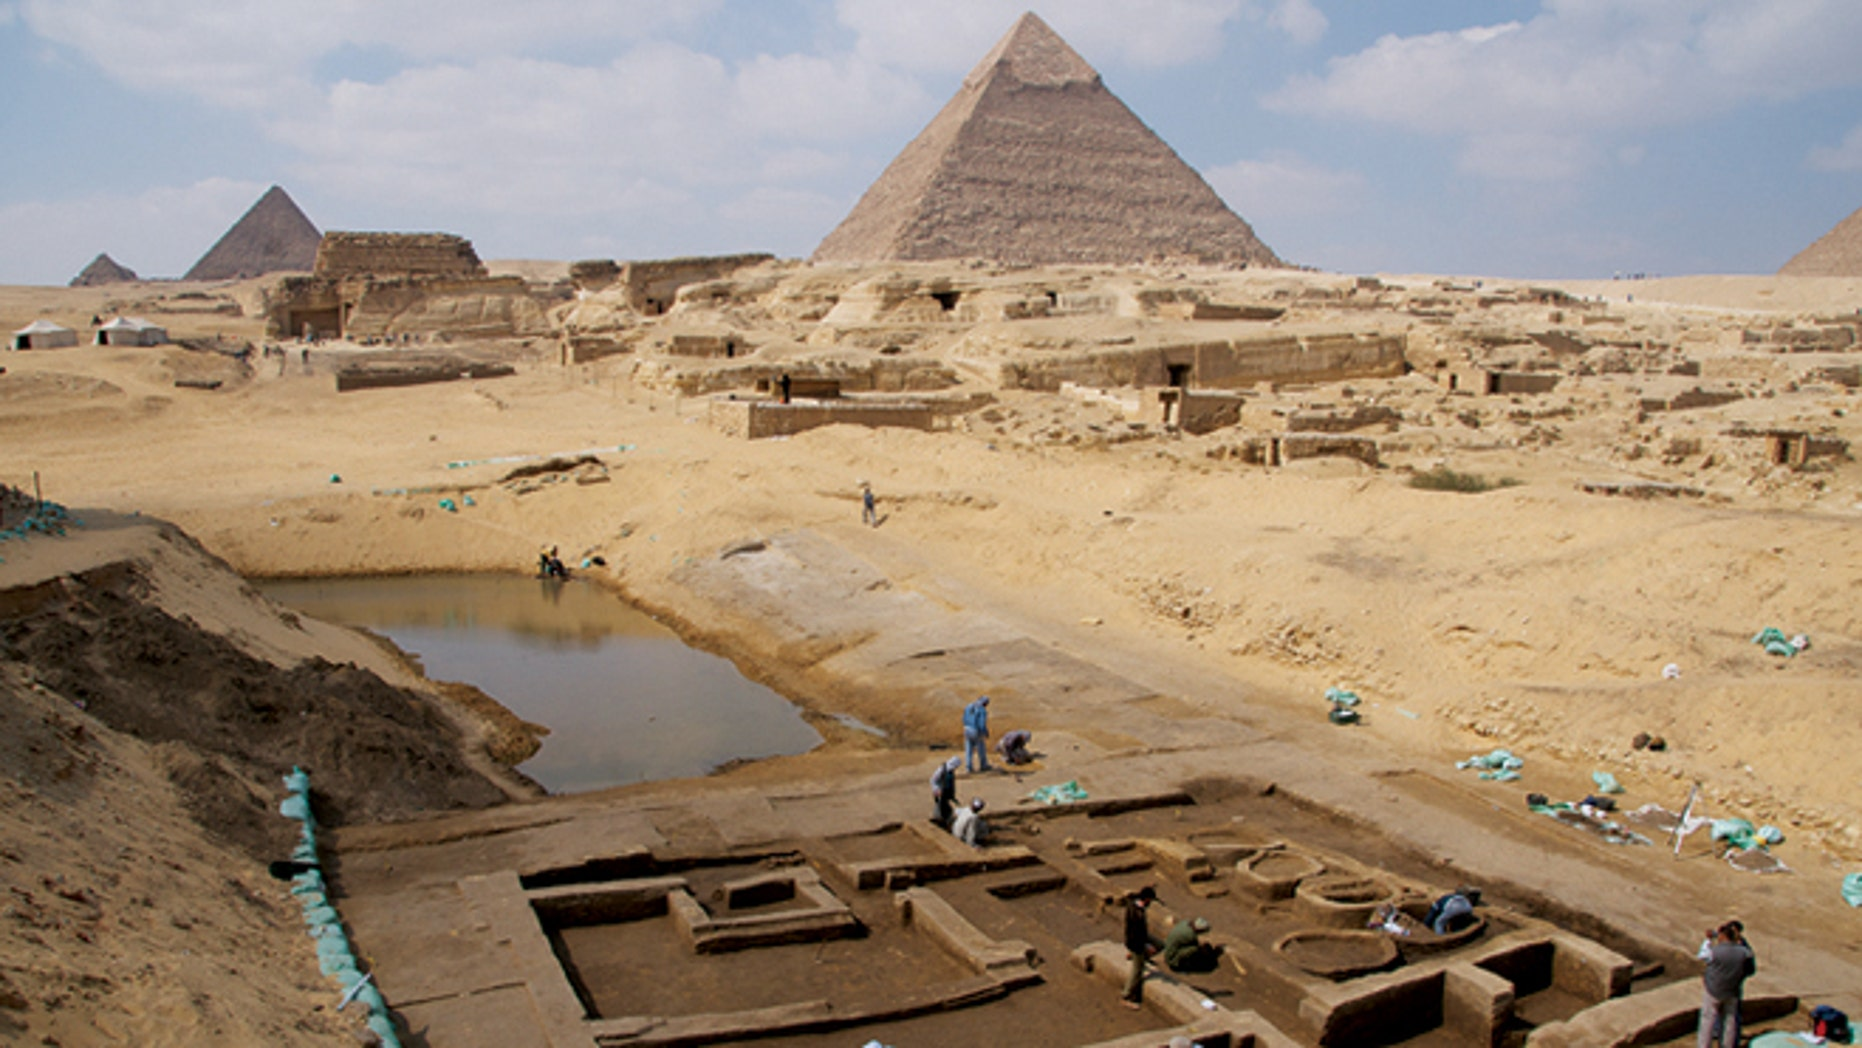 """Archaeologists working at the Giza Pyramids have made several new discoveries that shed light on life at the time the pyramids were built. Among the discoveries is a basin that may have been part of a thriving harbor and a """"silo building complex,"""" where researchers have found numerous bones from the forelimbs of cattle, offerings in ancient Egypt, suggesting royal cult priests perhaps venerating the pharaoh Khafre occupied the complex."""